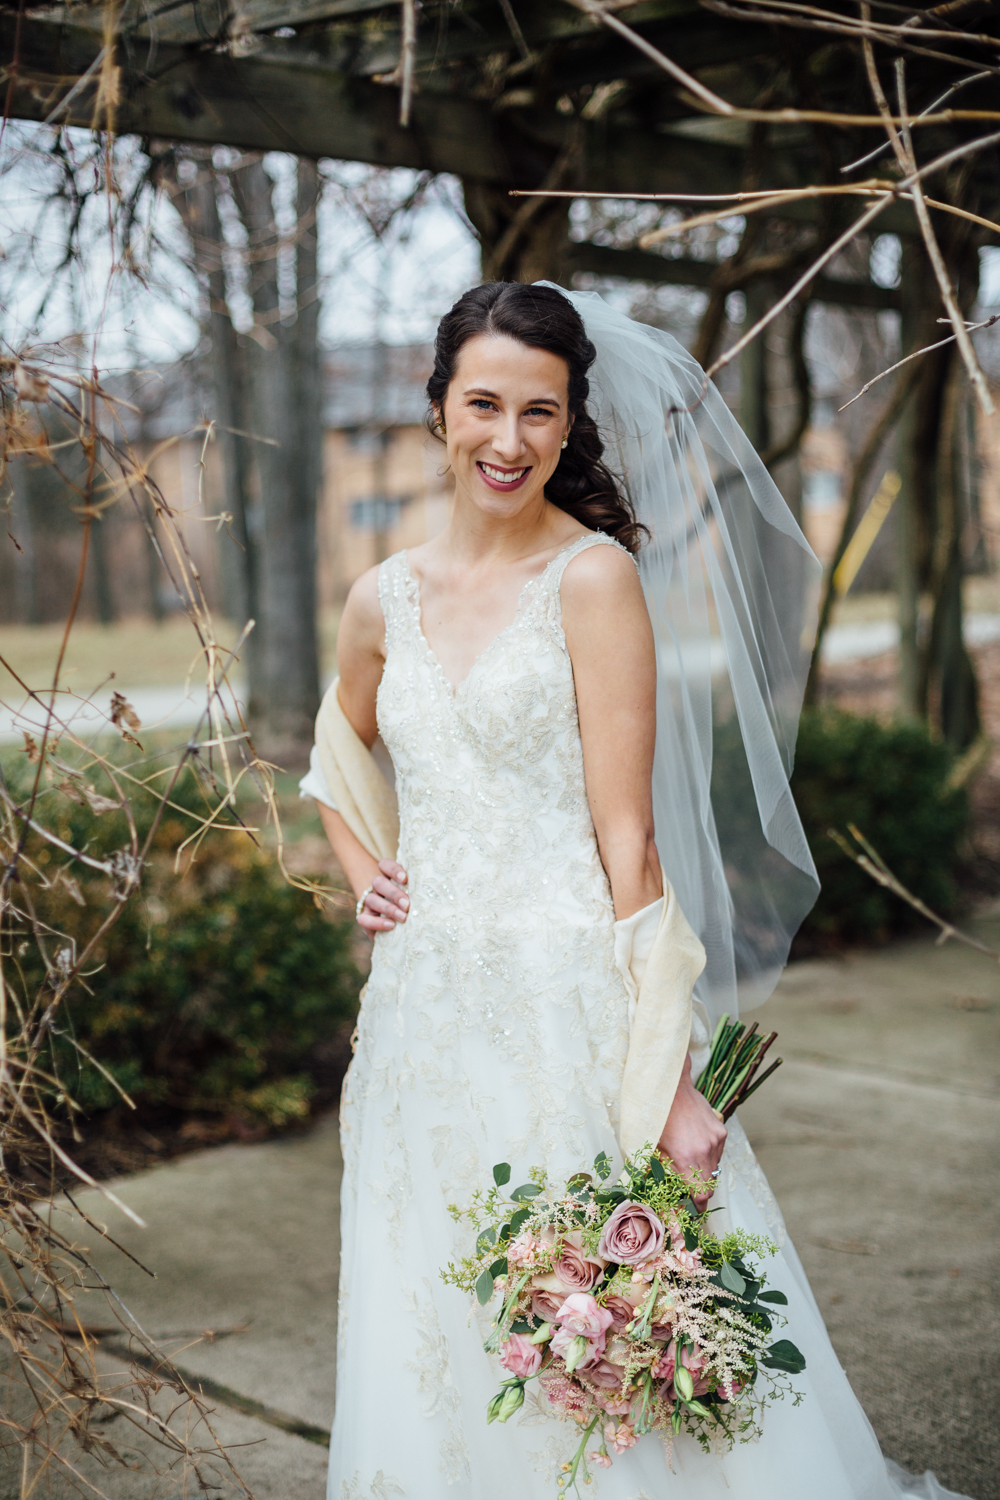 Fun, Intimate Spring Wedding by Corrie Mick Photography-20.jpg